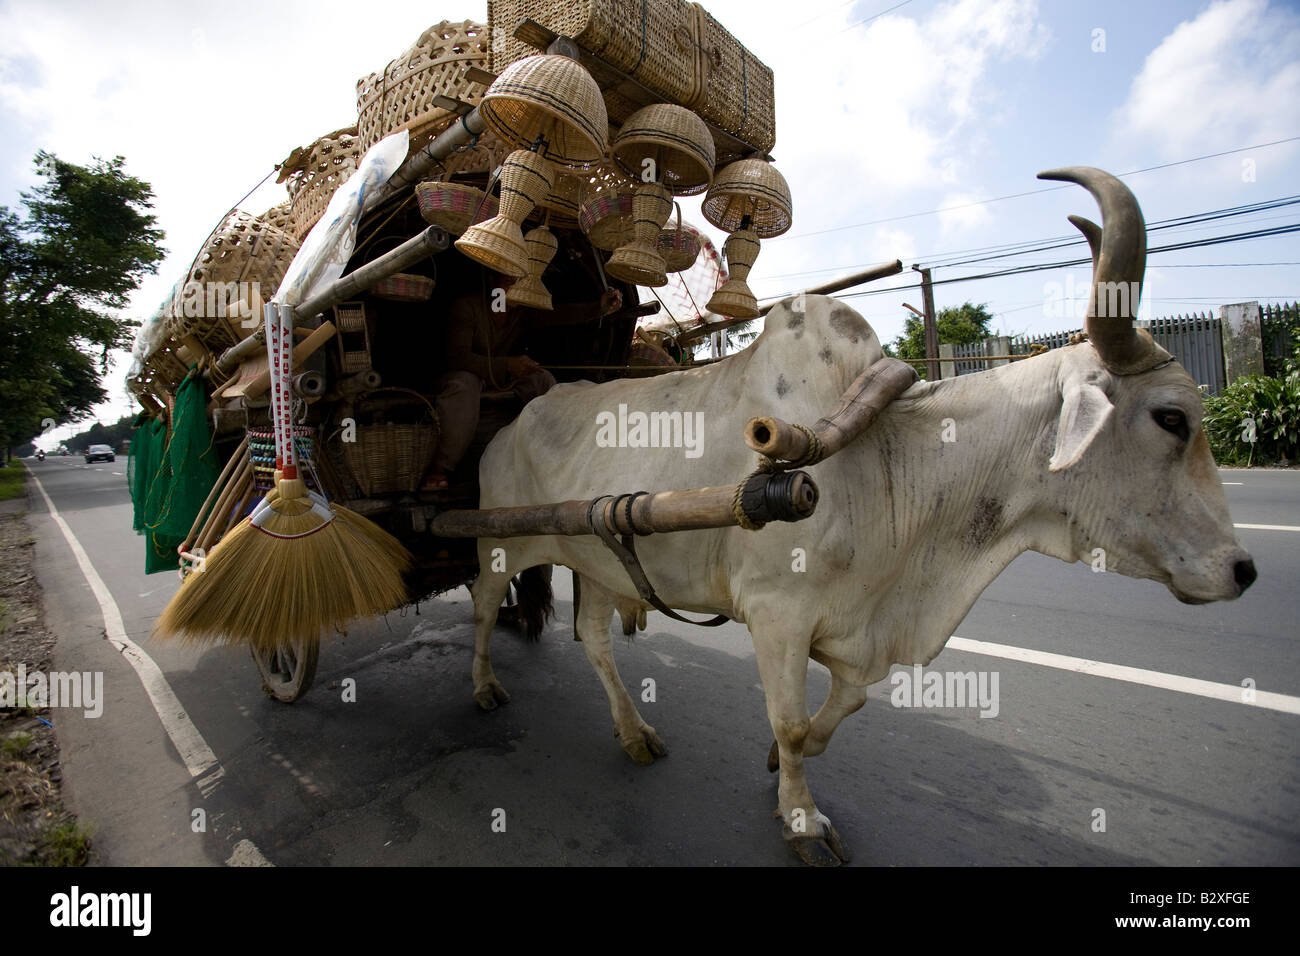 An ox pulls a cart loaded with a Filipino's wares to market along a highway leading to Tagaytay City, Philippines. - Stock Image